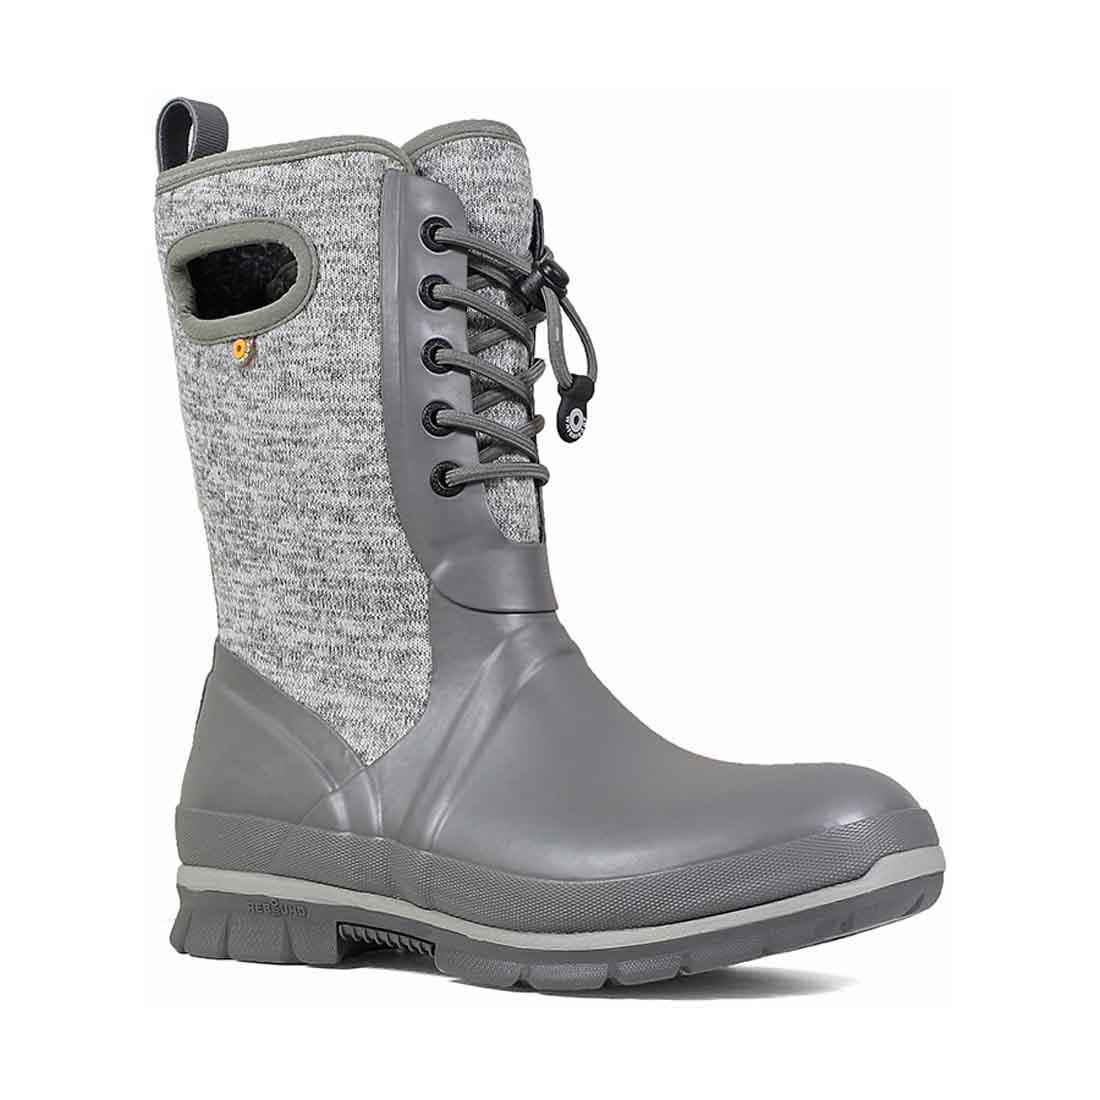 BOGS Crandall Lace-Up Knit Boot - Gray_2.jpg